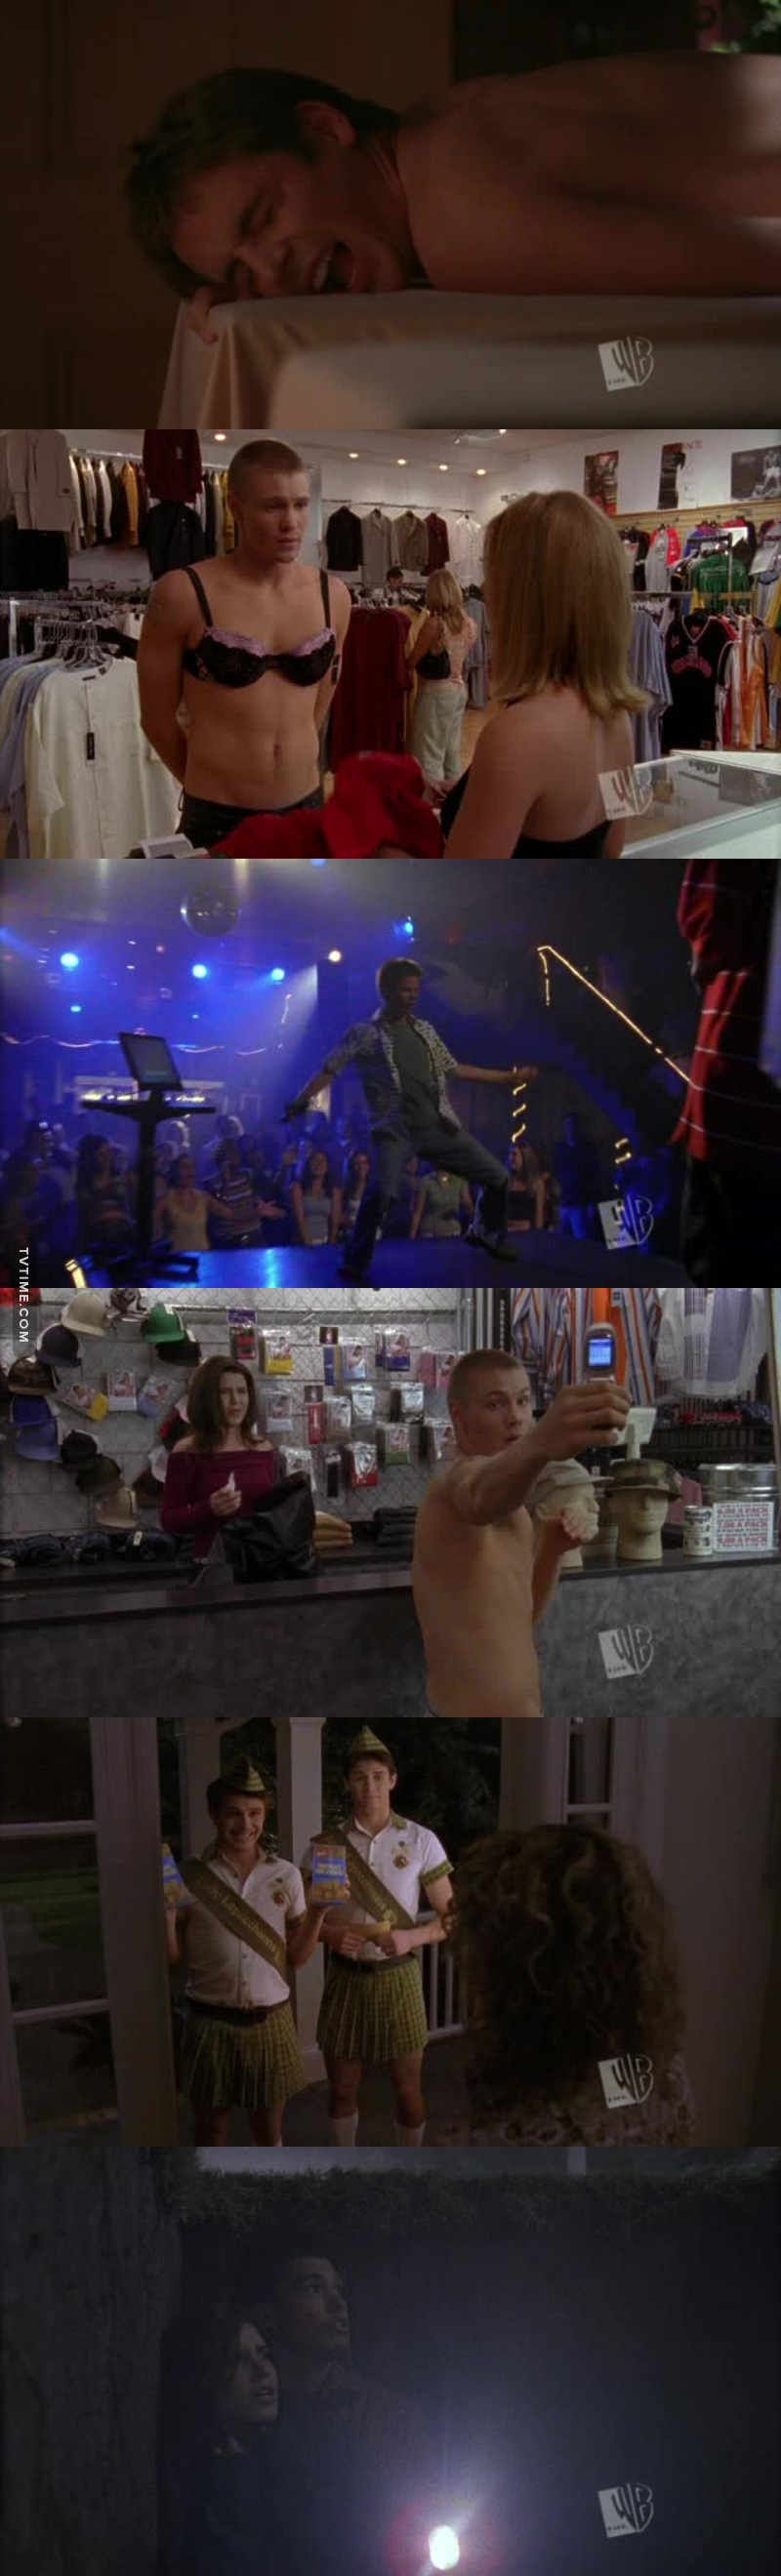 this is one of my favorite oth episodes!! i rewatch it a lot hahaha! timmy's the best 😂😂